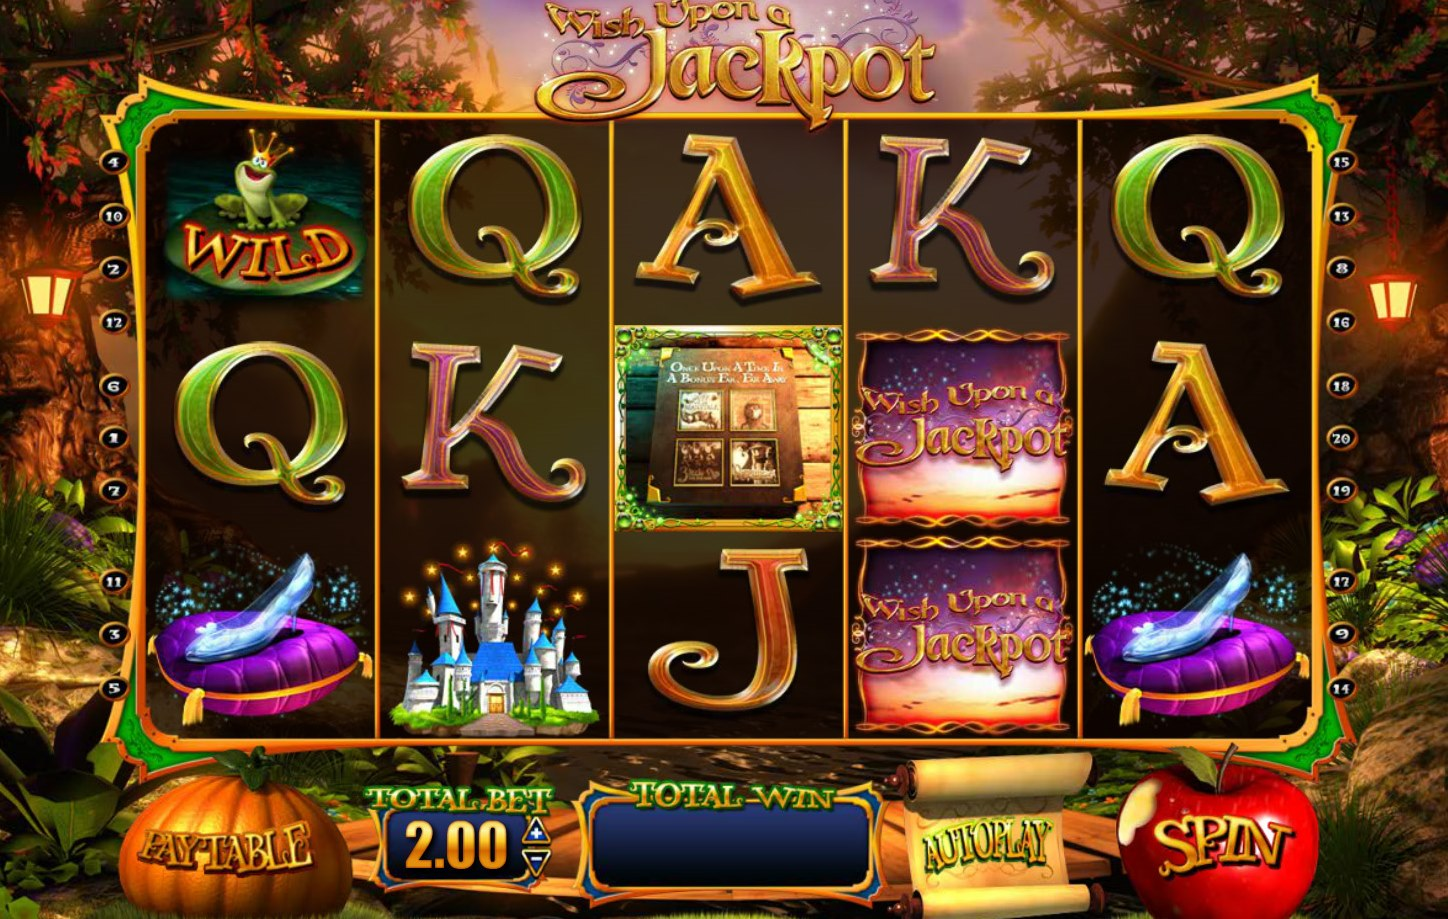 Play the best online casino games and win at Casumo